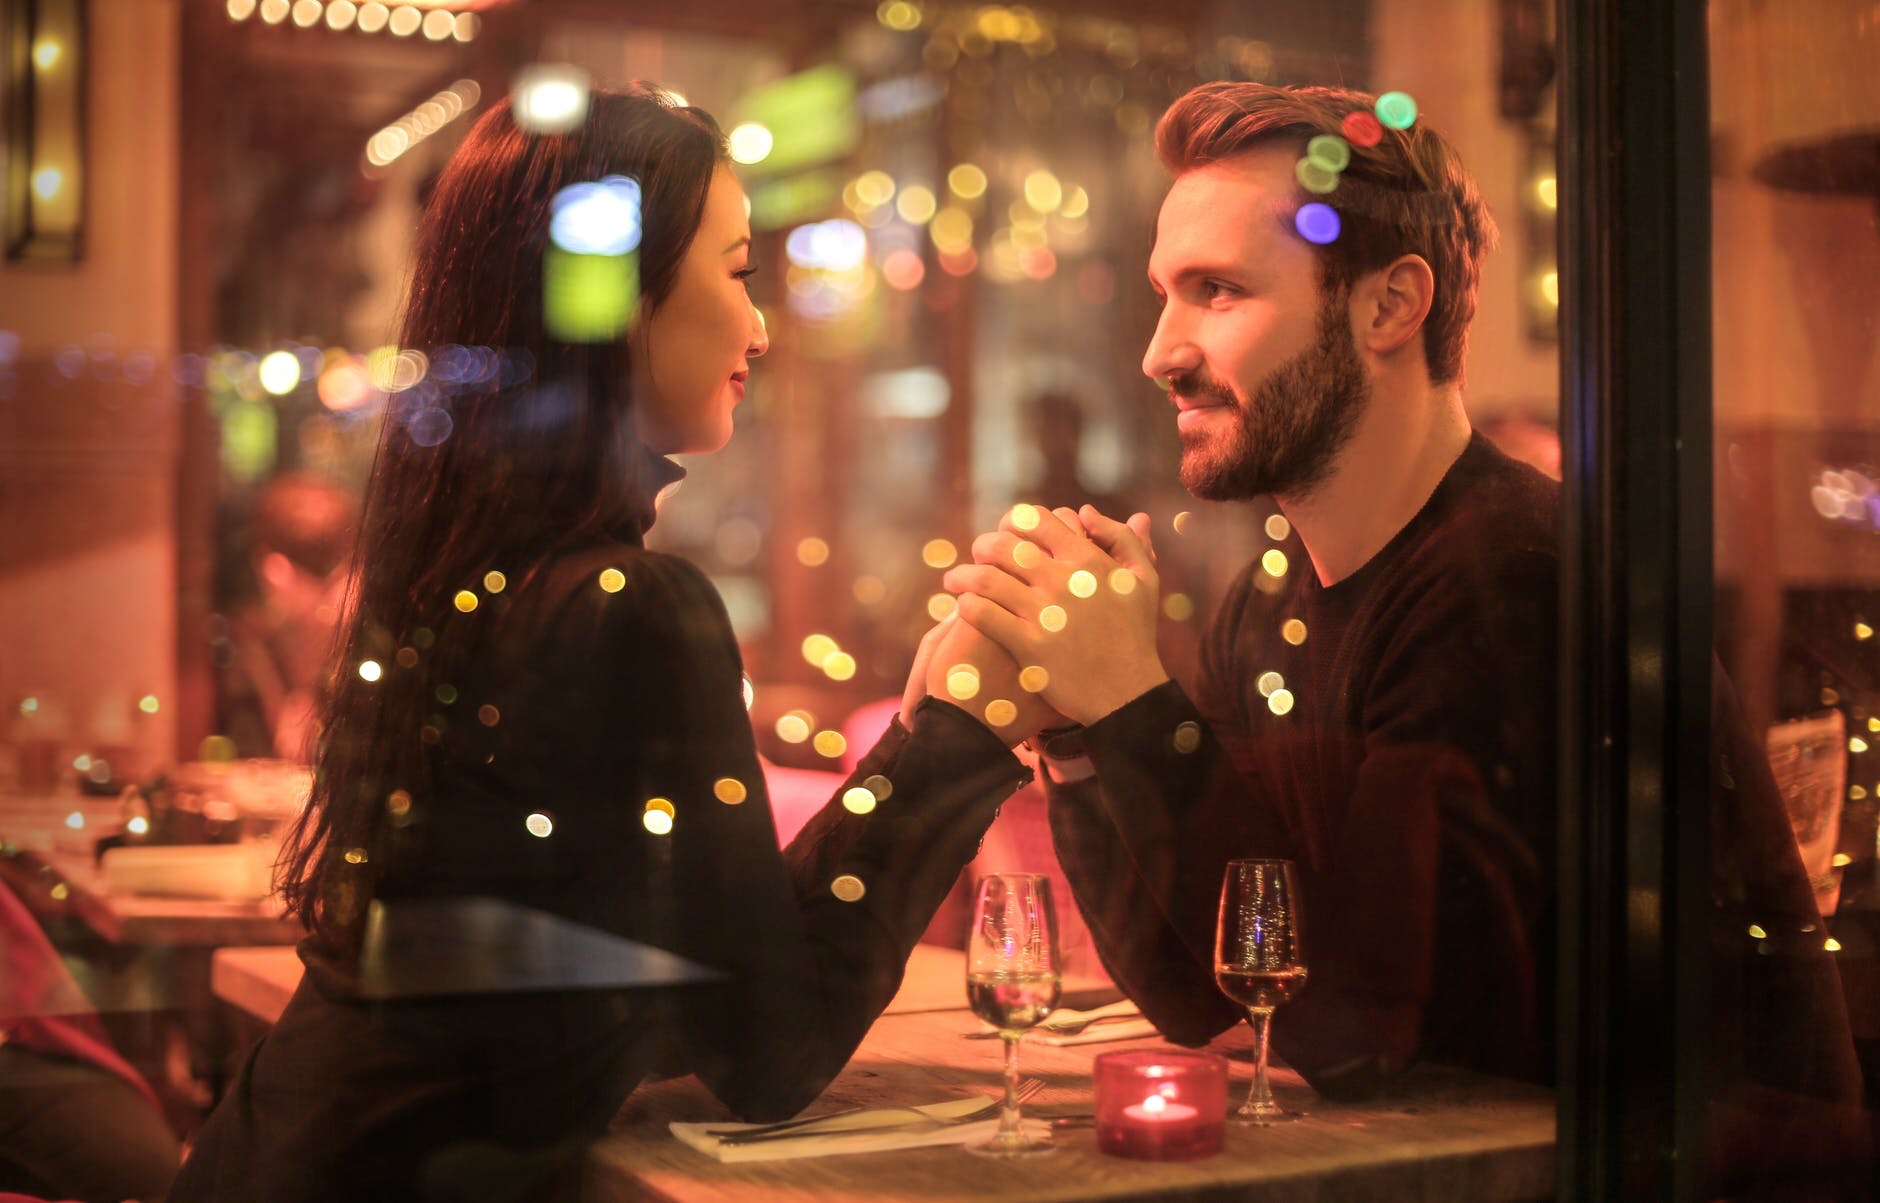 Romantic couple in restaurant